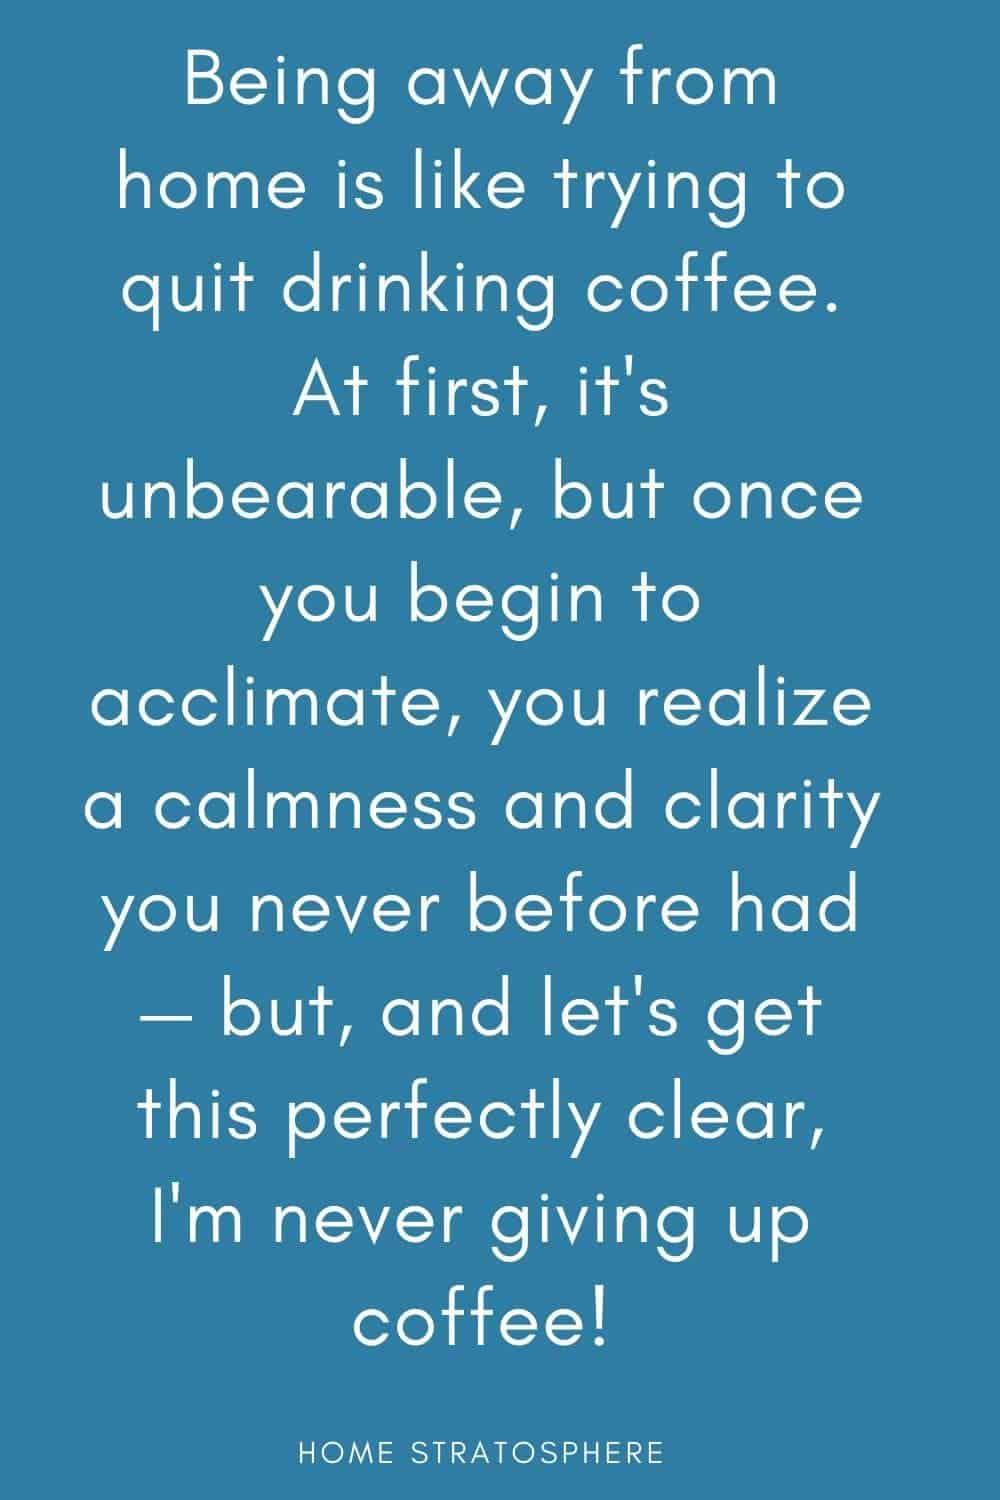 """Being away from home is like trying to quit drinking coffee. At first, it's unbearable, but once you begin to acclimate, you realize a calmness and clarity you never before had — but, and let's get this perfectly clear, I'm never giving up coffee!"""